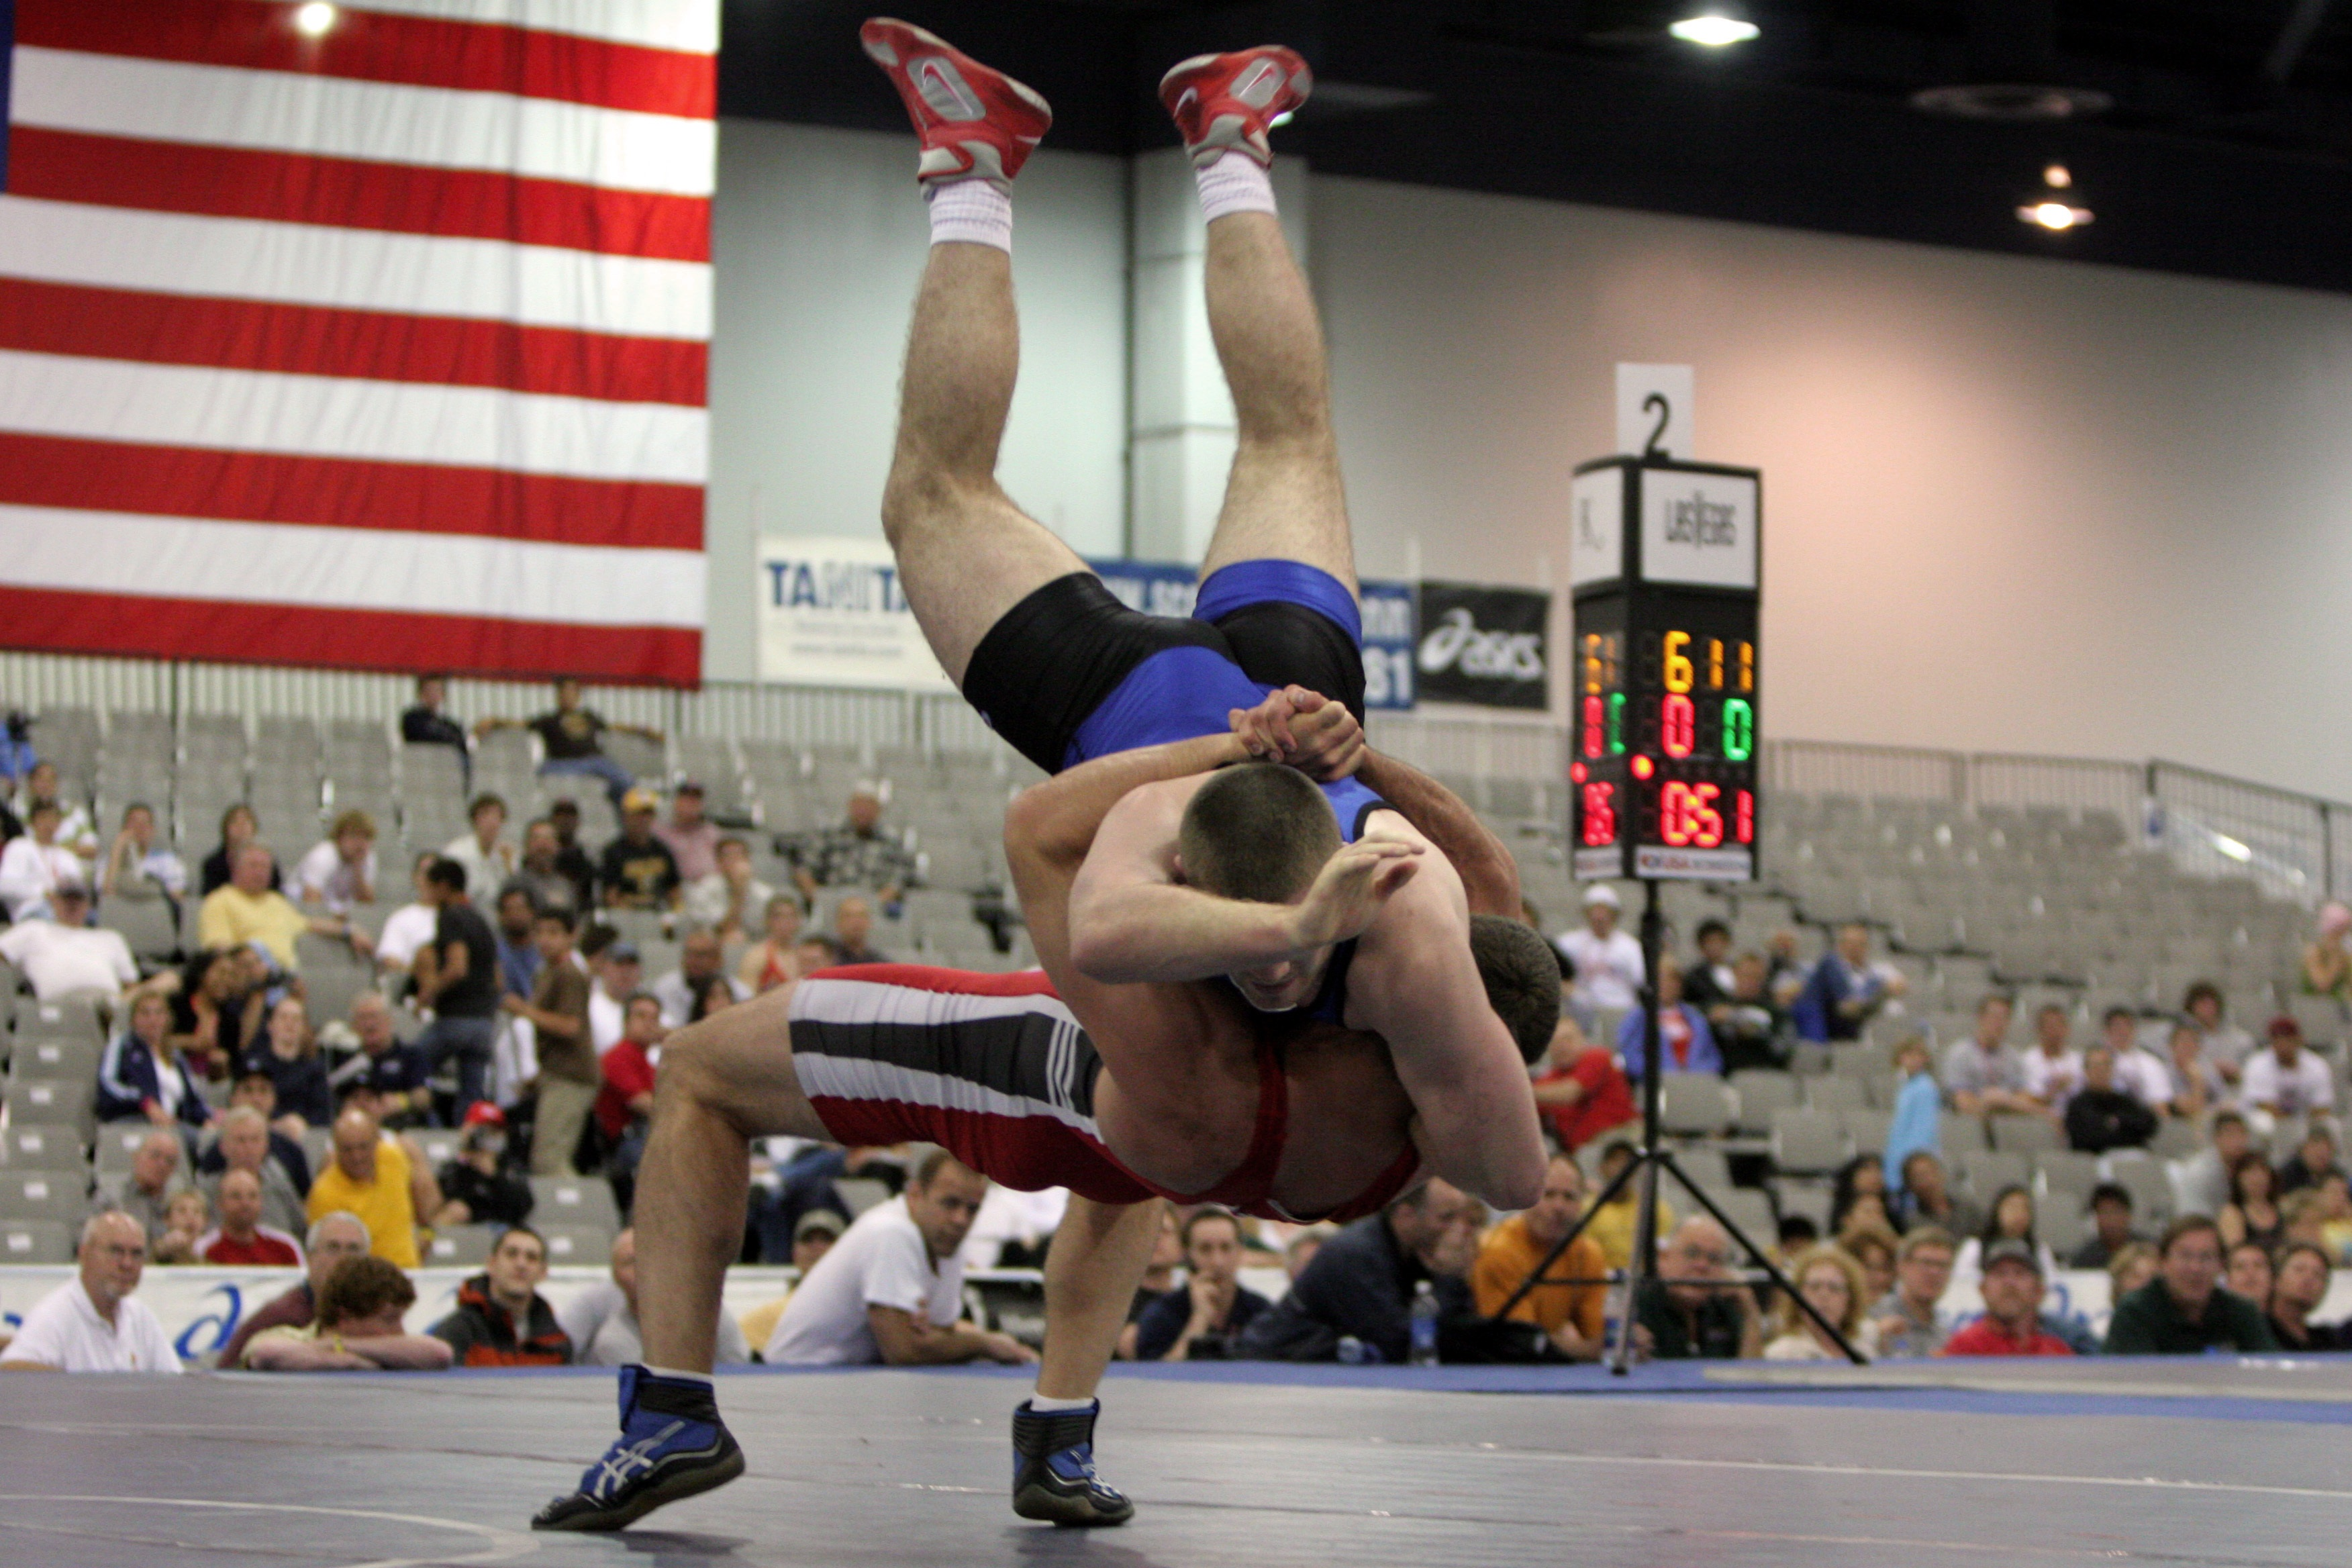 Wrestling Ring, Activity, Athlete, Olympic, Ring, HQ Photo